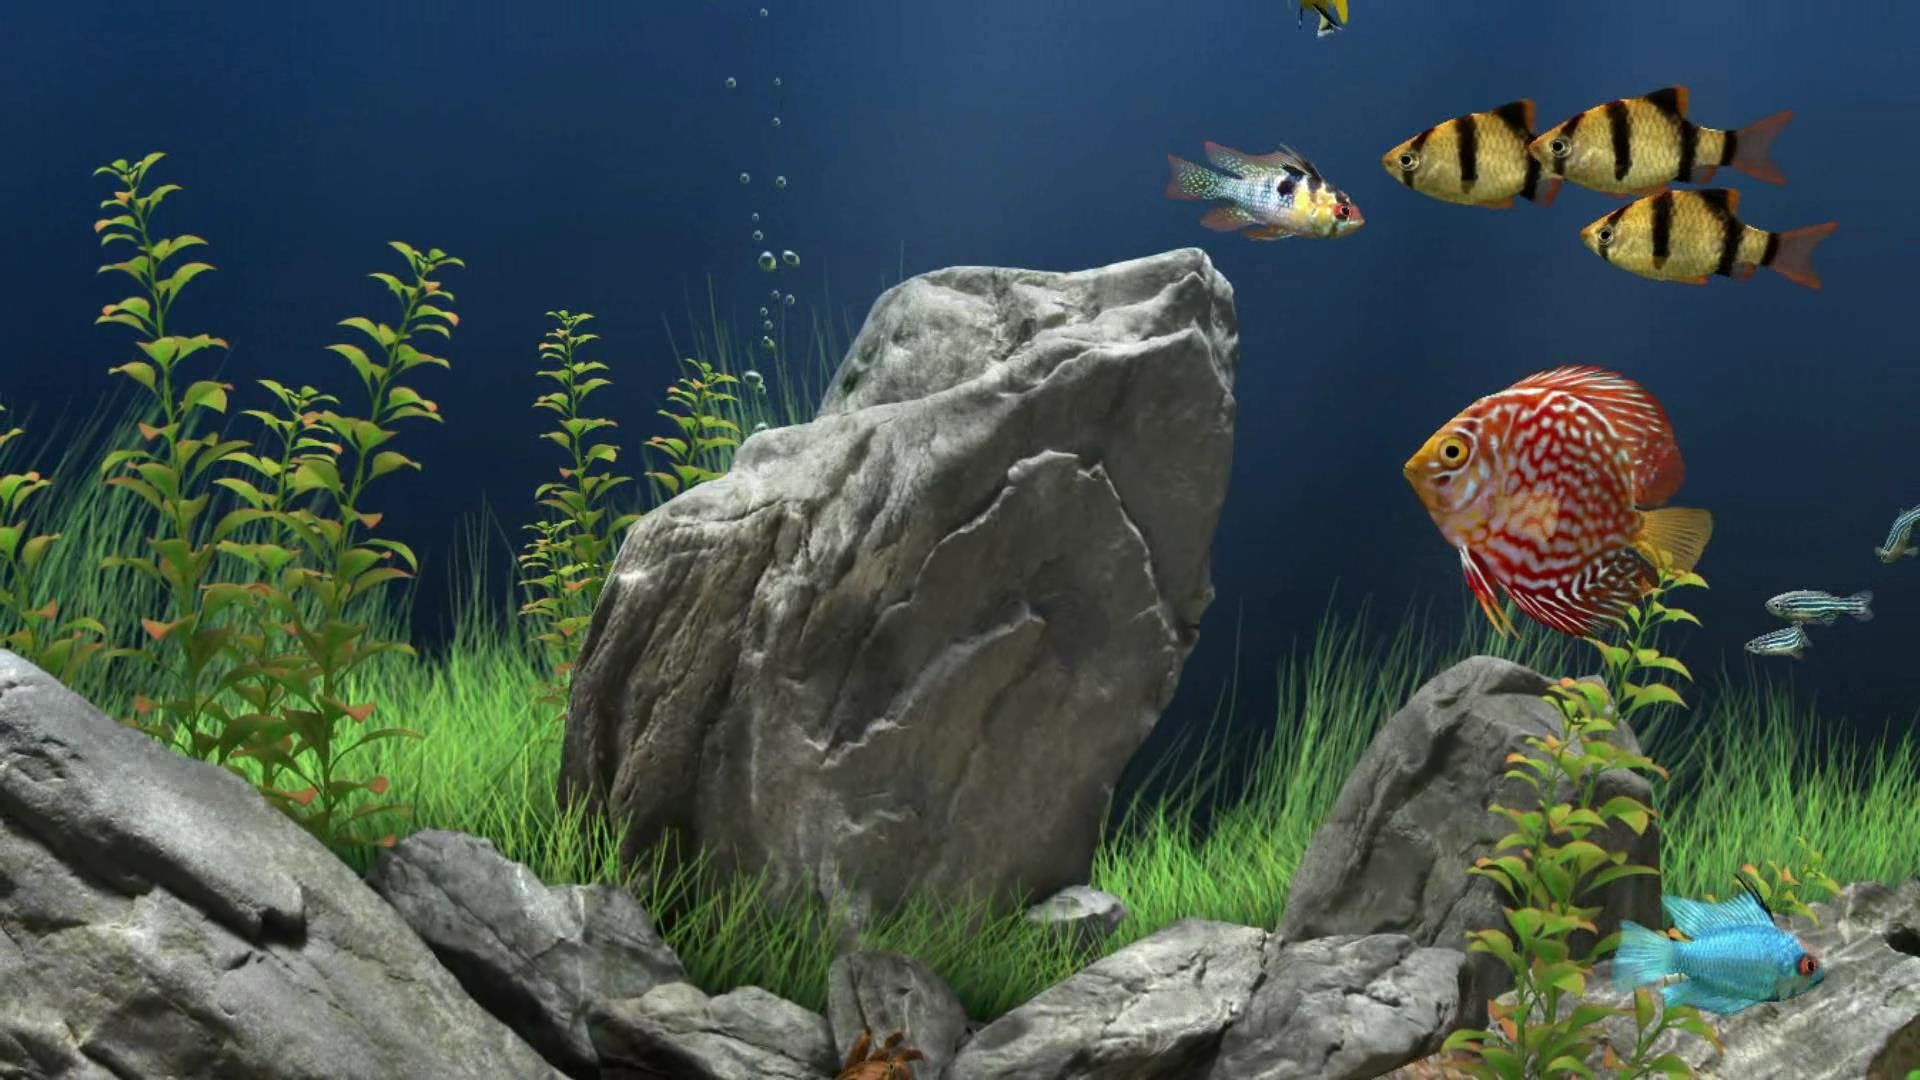 still thinking of you - aquarium - 3d screensaver - piano hd 1080p